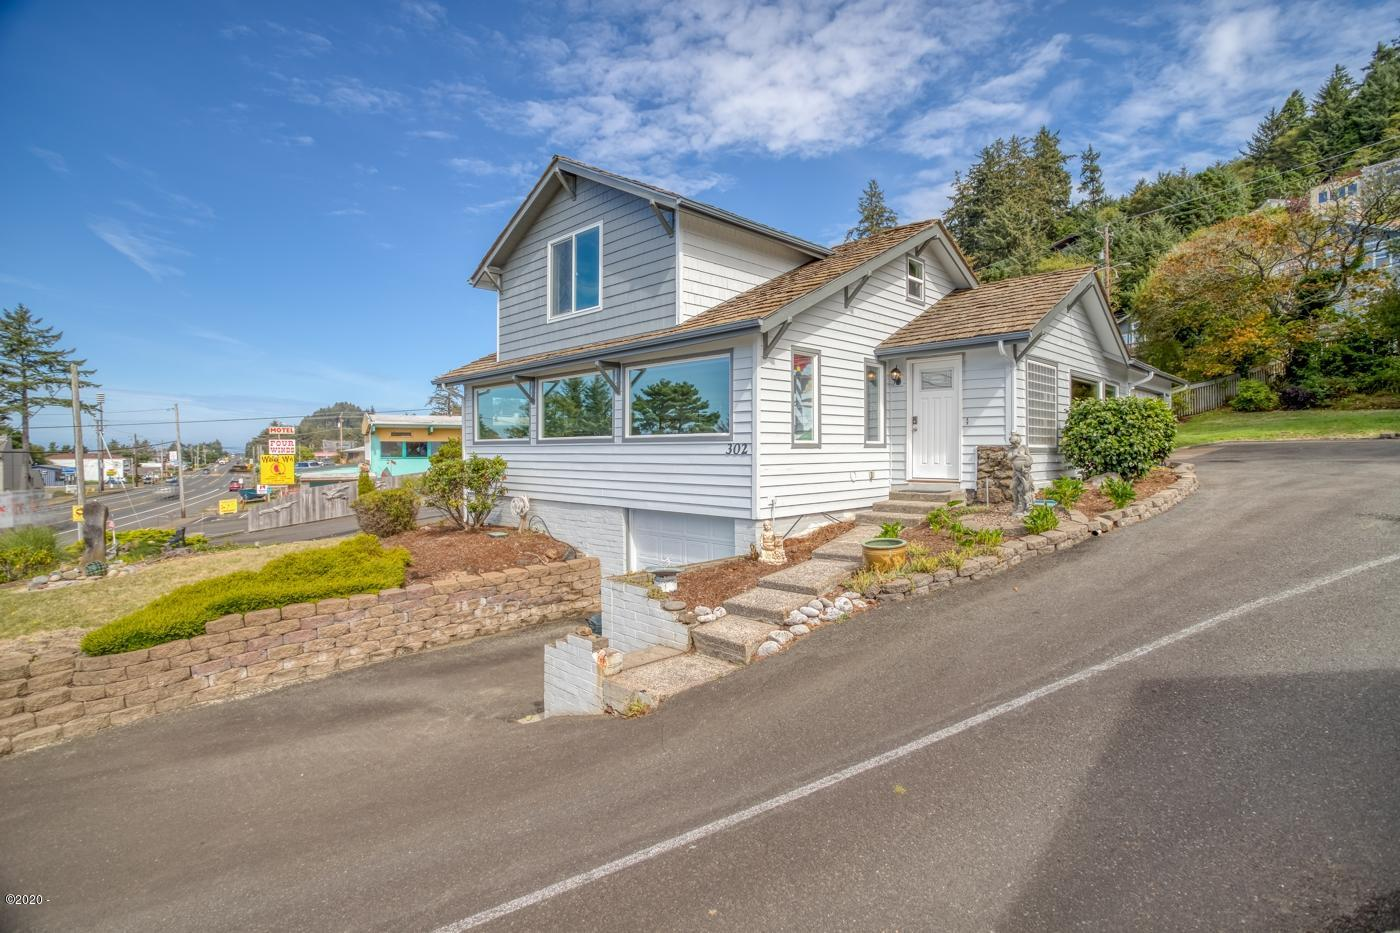 302 N Hwy 101, Depoe Bay, OR 97341 - Front of Home